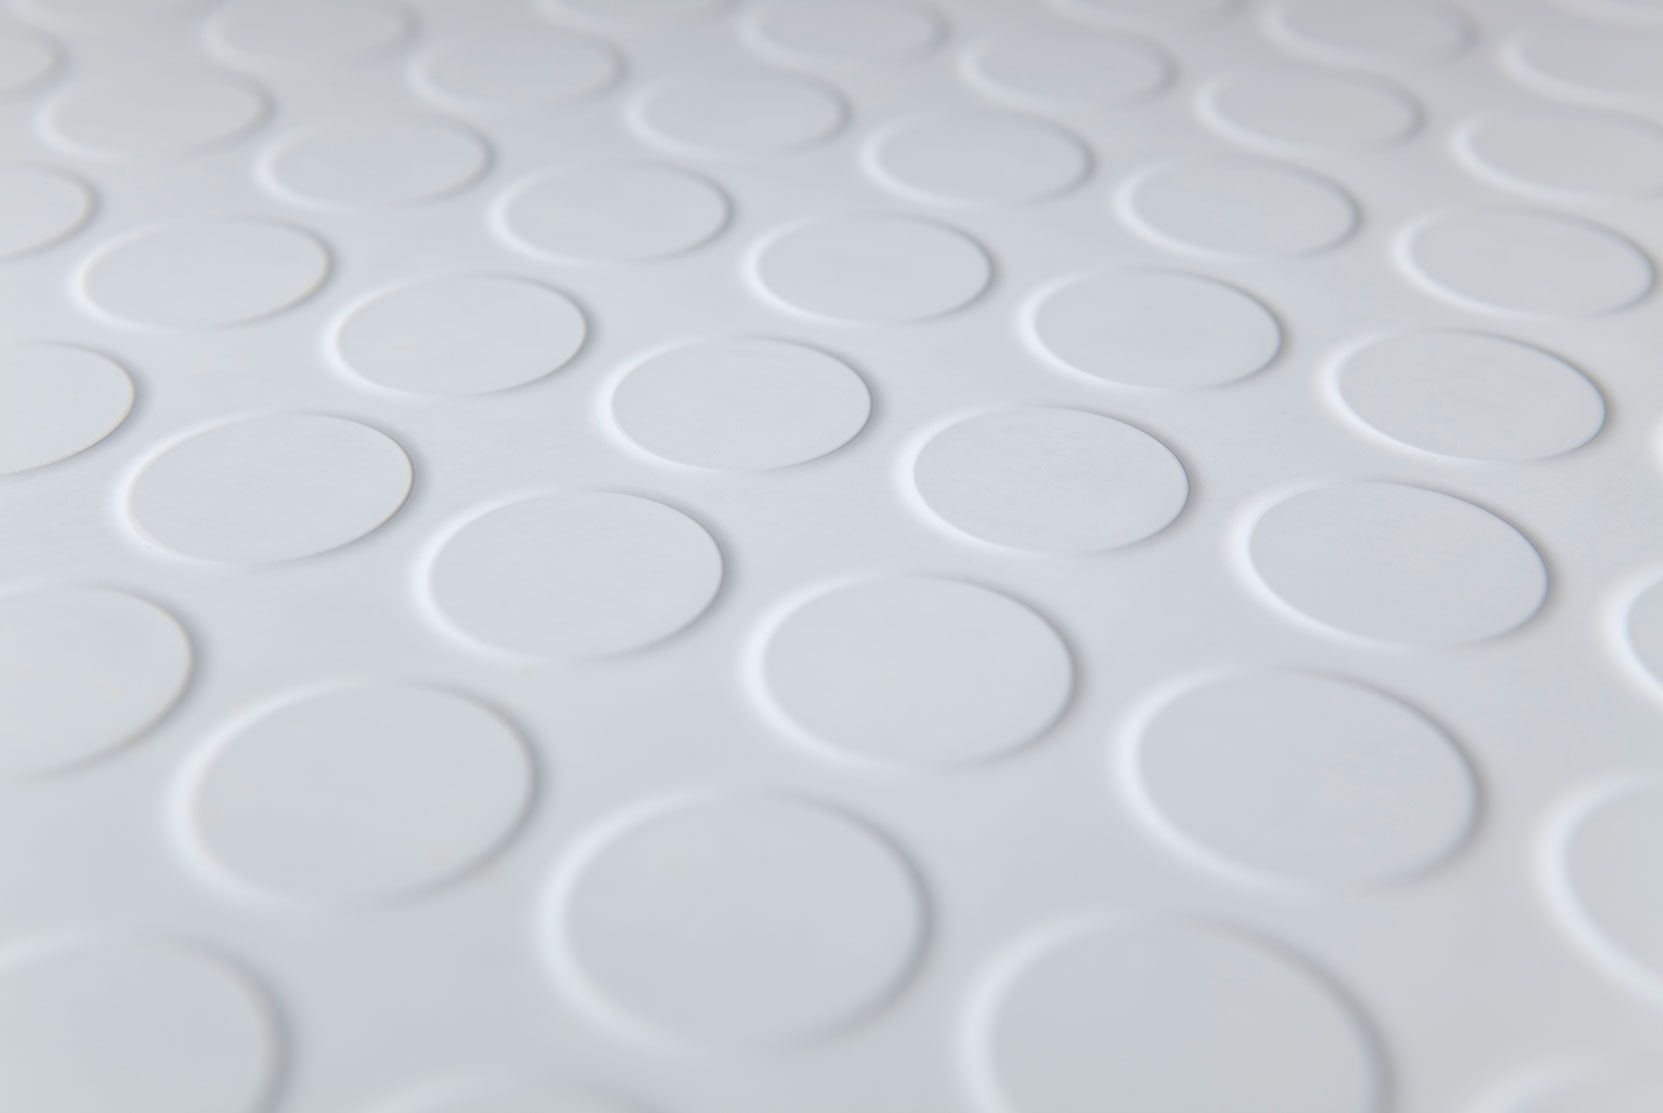 Aluminium colour round stud rubber flooring | The Rubber Flooring ...